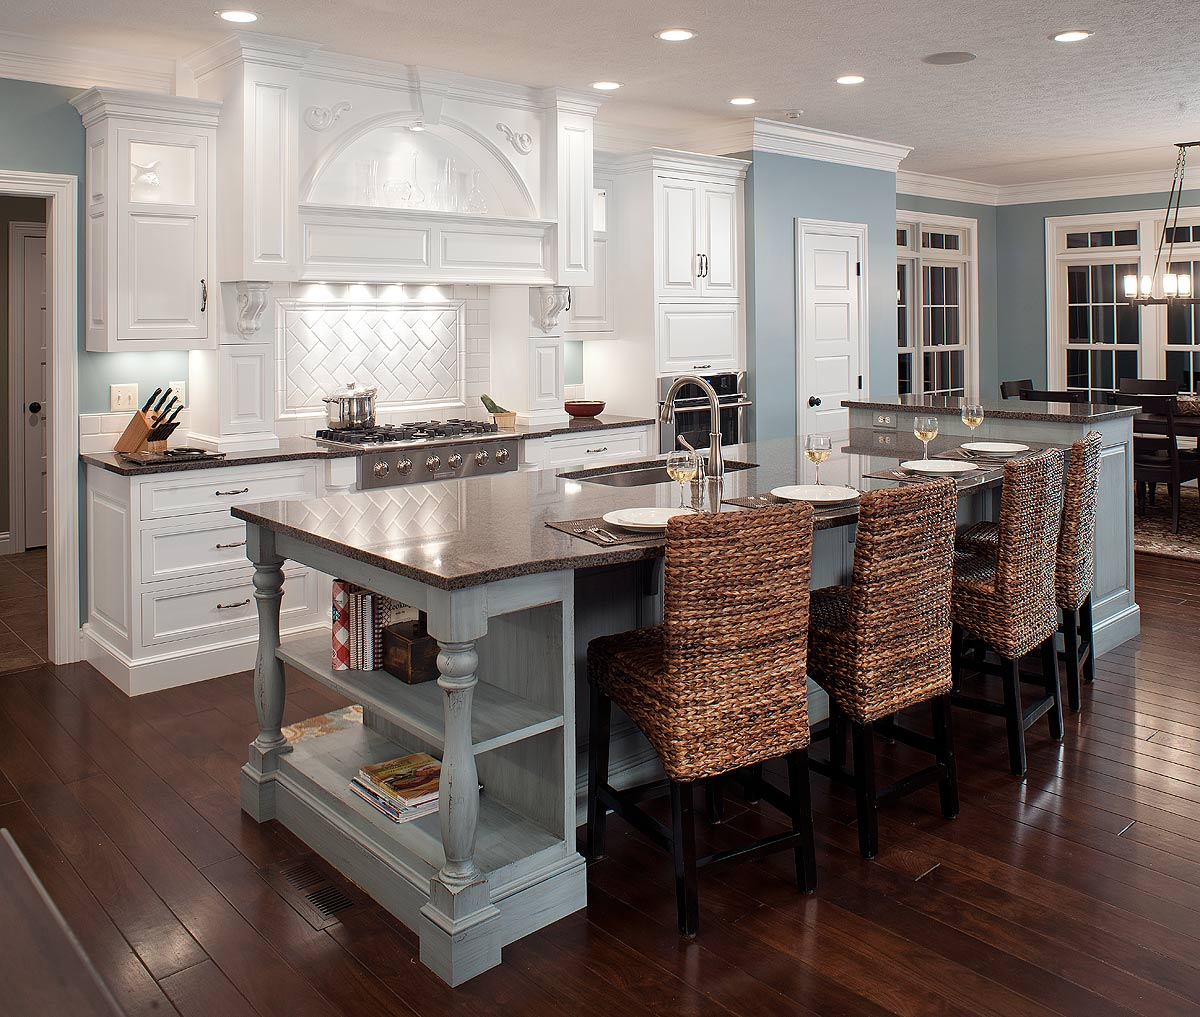 mullet cabinet family of 7 kitchen - Cool Kitchen Ideas